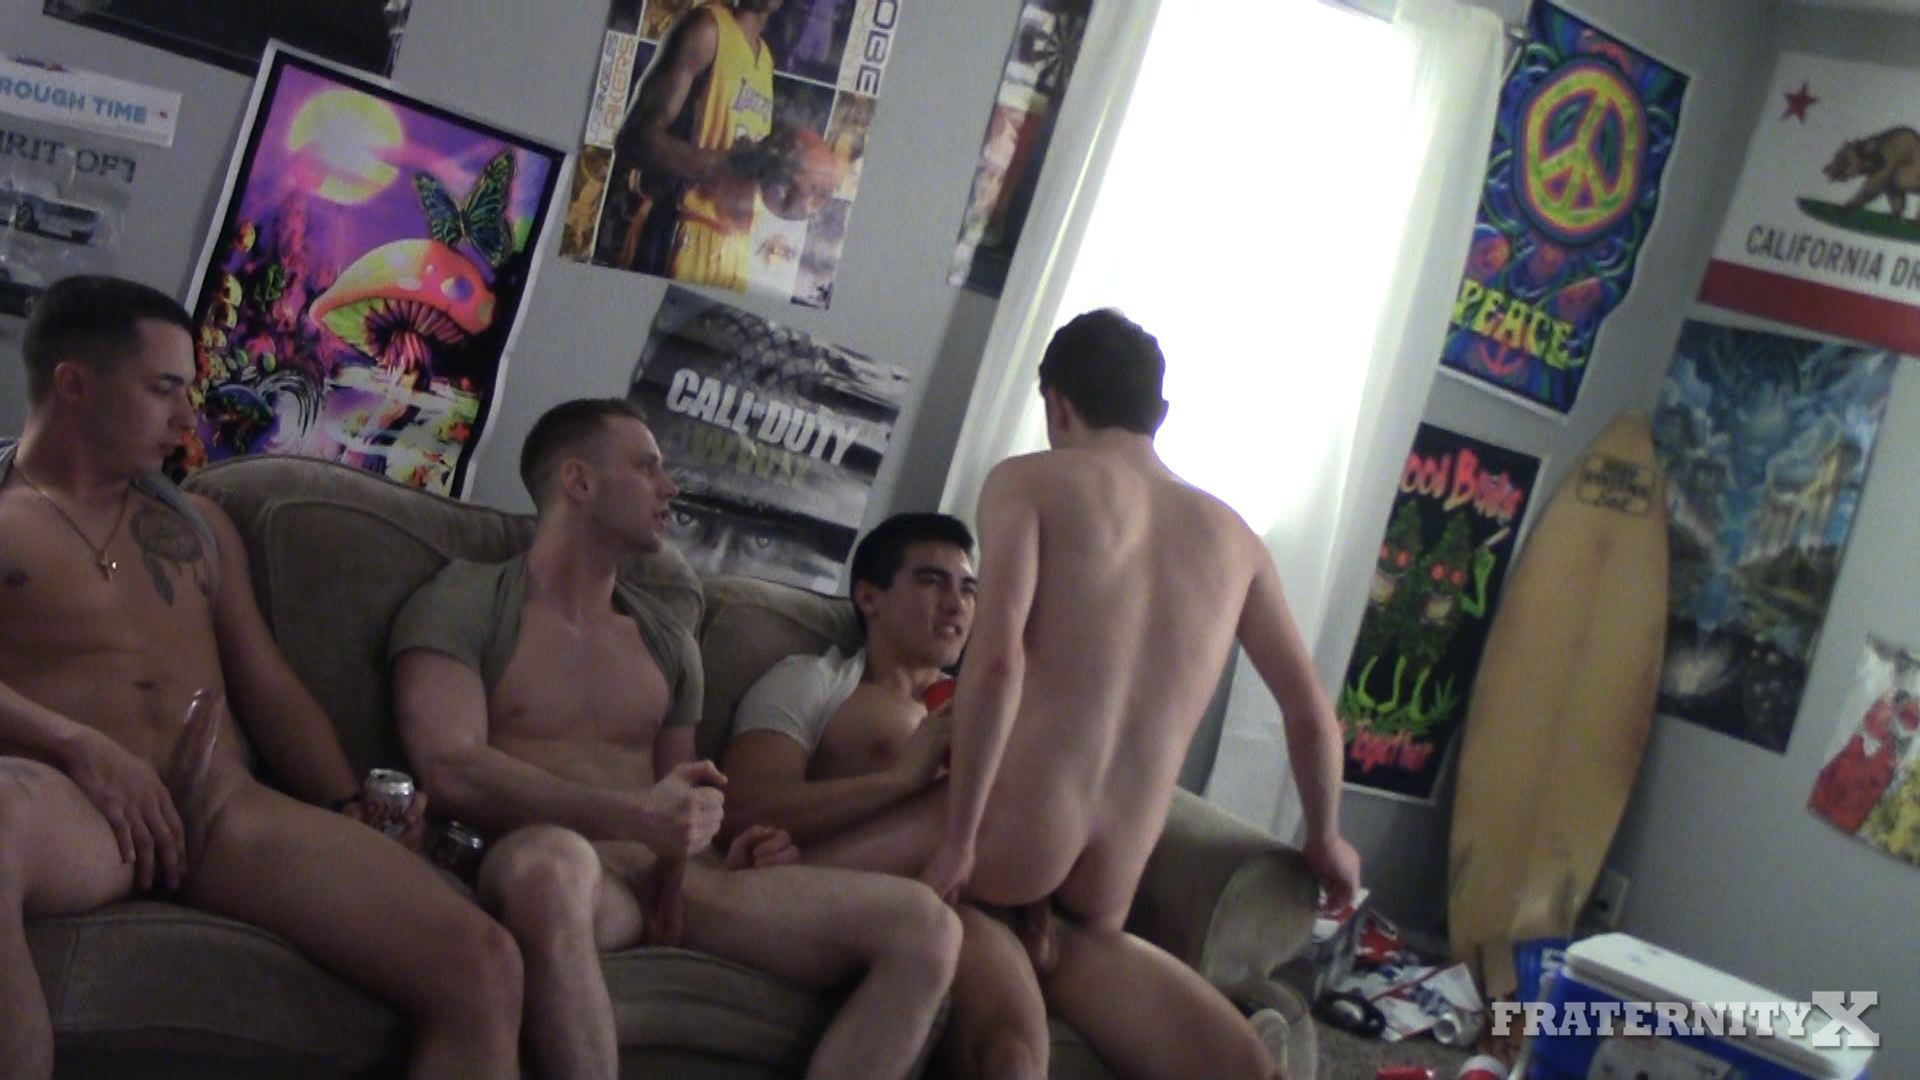 Fraternity-X-Naked-Frat-Guys-Bareback-Gang-Bang-Sex-Video-05 Visitor To The Fraternity House Gets Several Big Raw Dicks Up The Ass